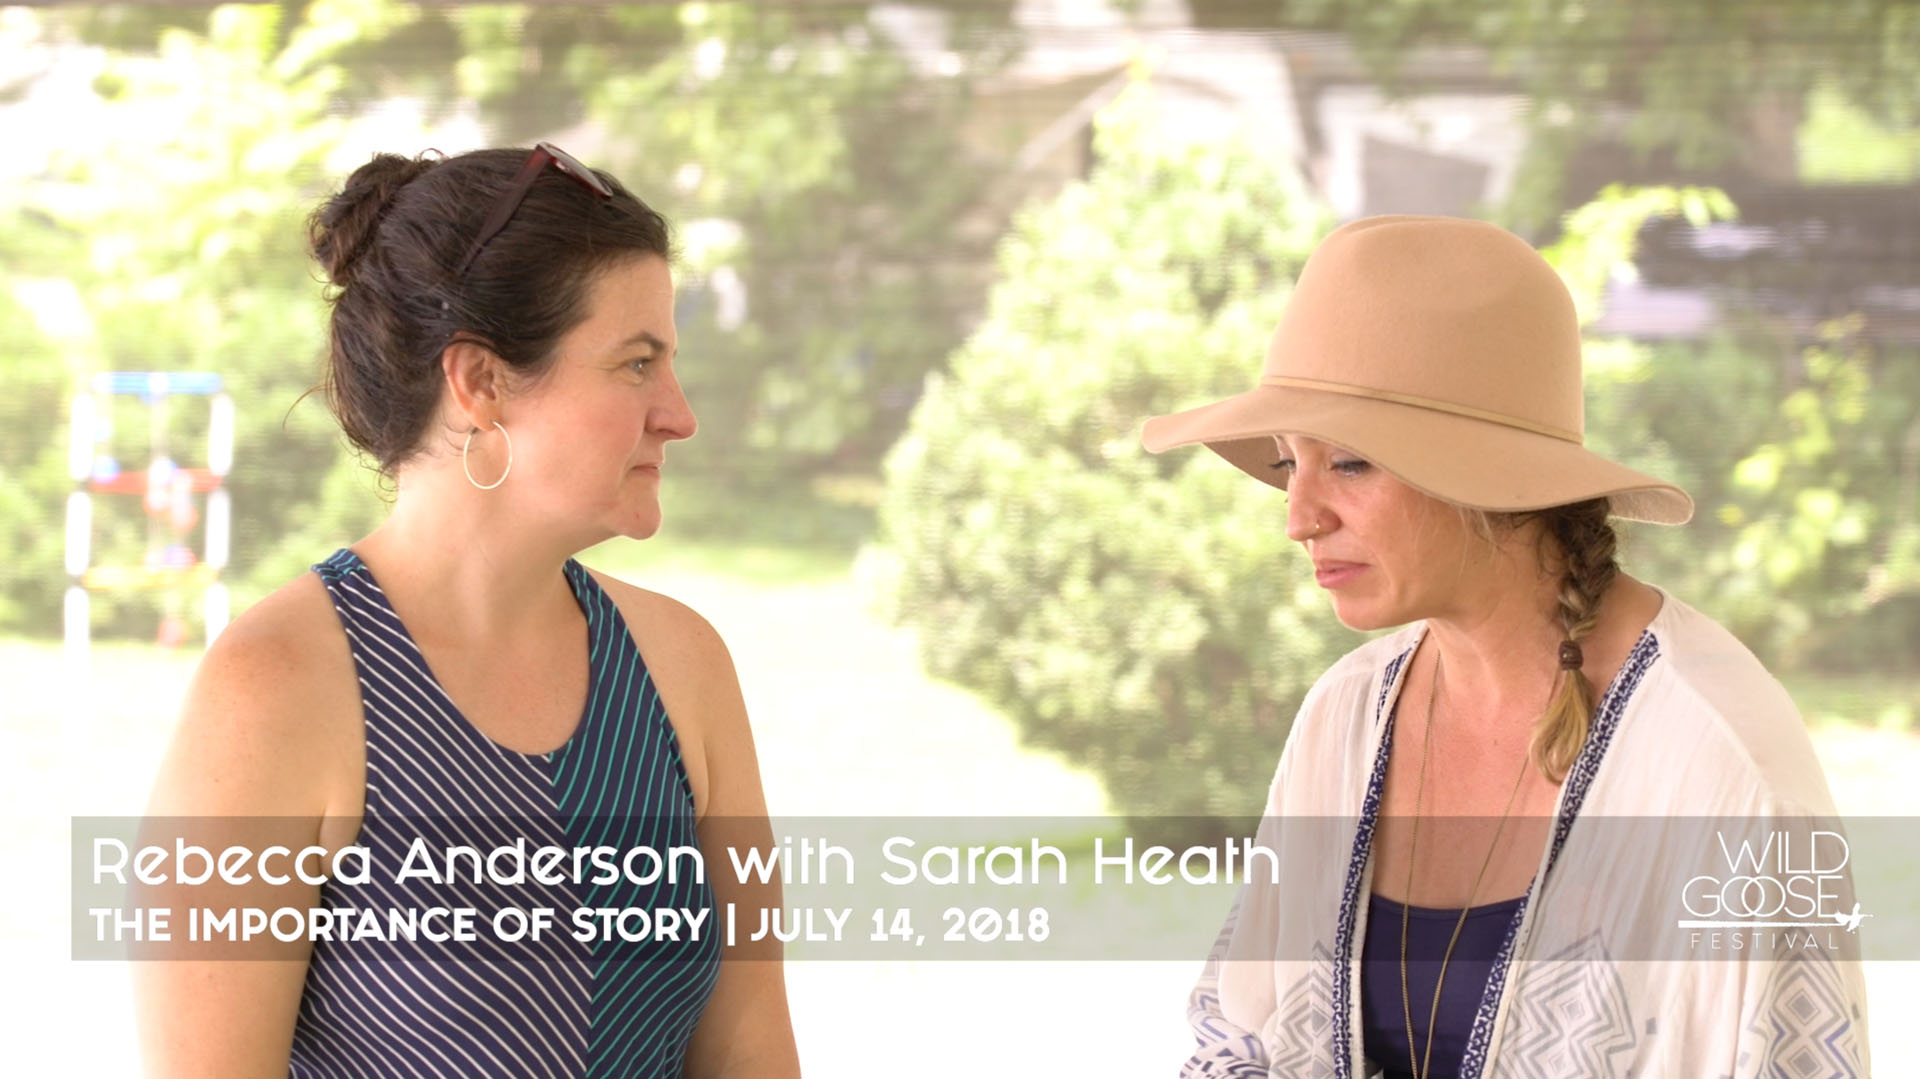 Rebecca Anderson with Sarah Heath